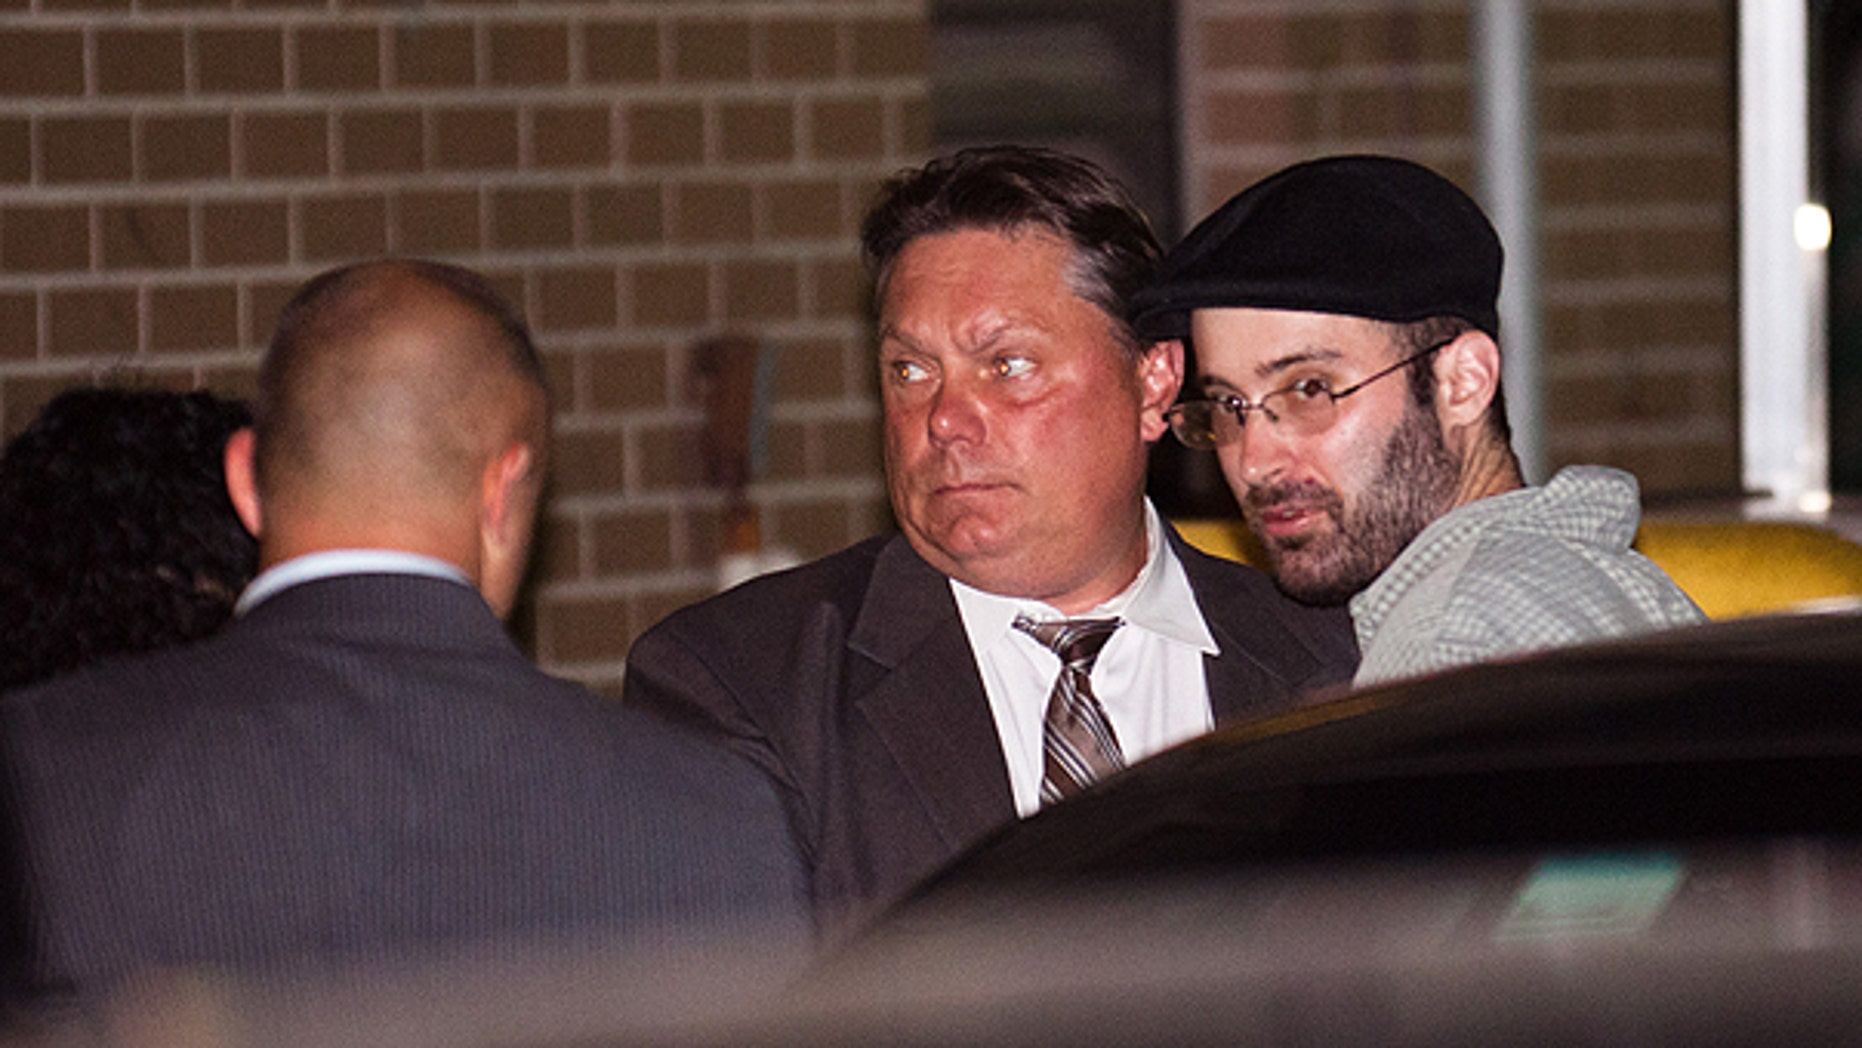 July 14: Levi Aron, right, the suspect accused killing and dismembering 8-year-old Brooklyn boy Leiby Kletzy, is led into the 67th Precinct by police in Brooklyn.